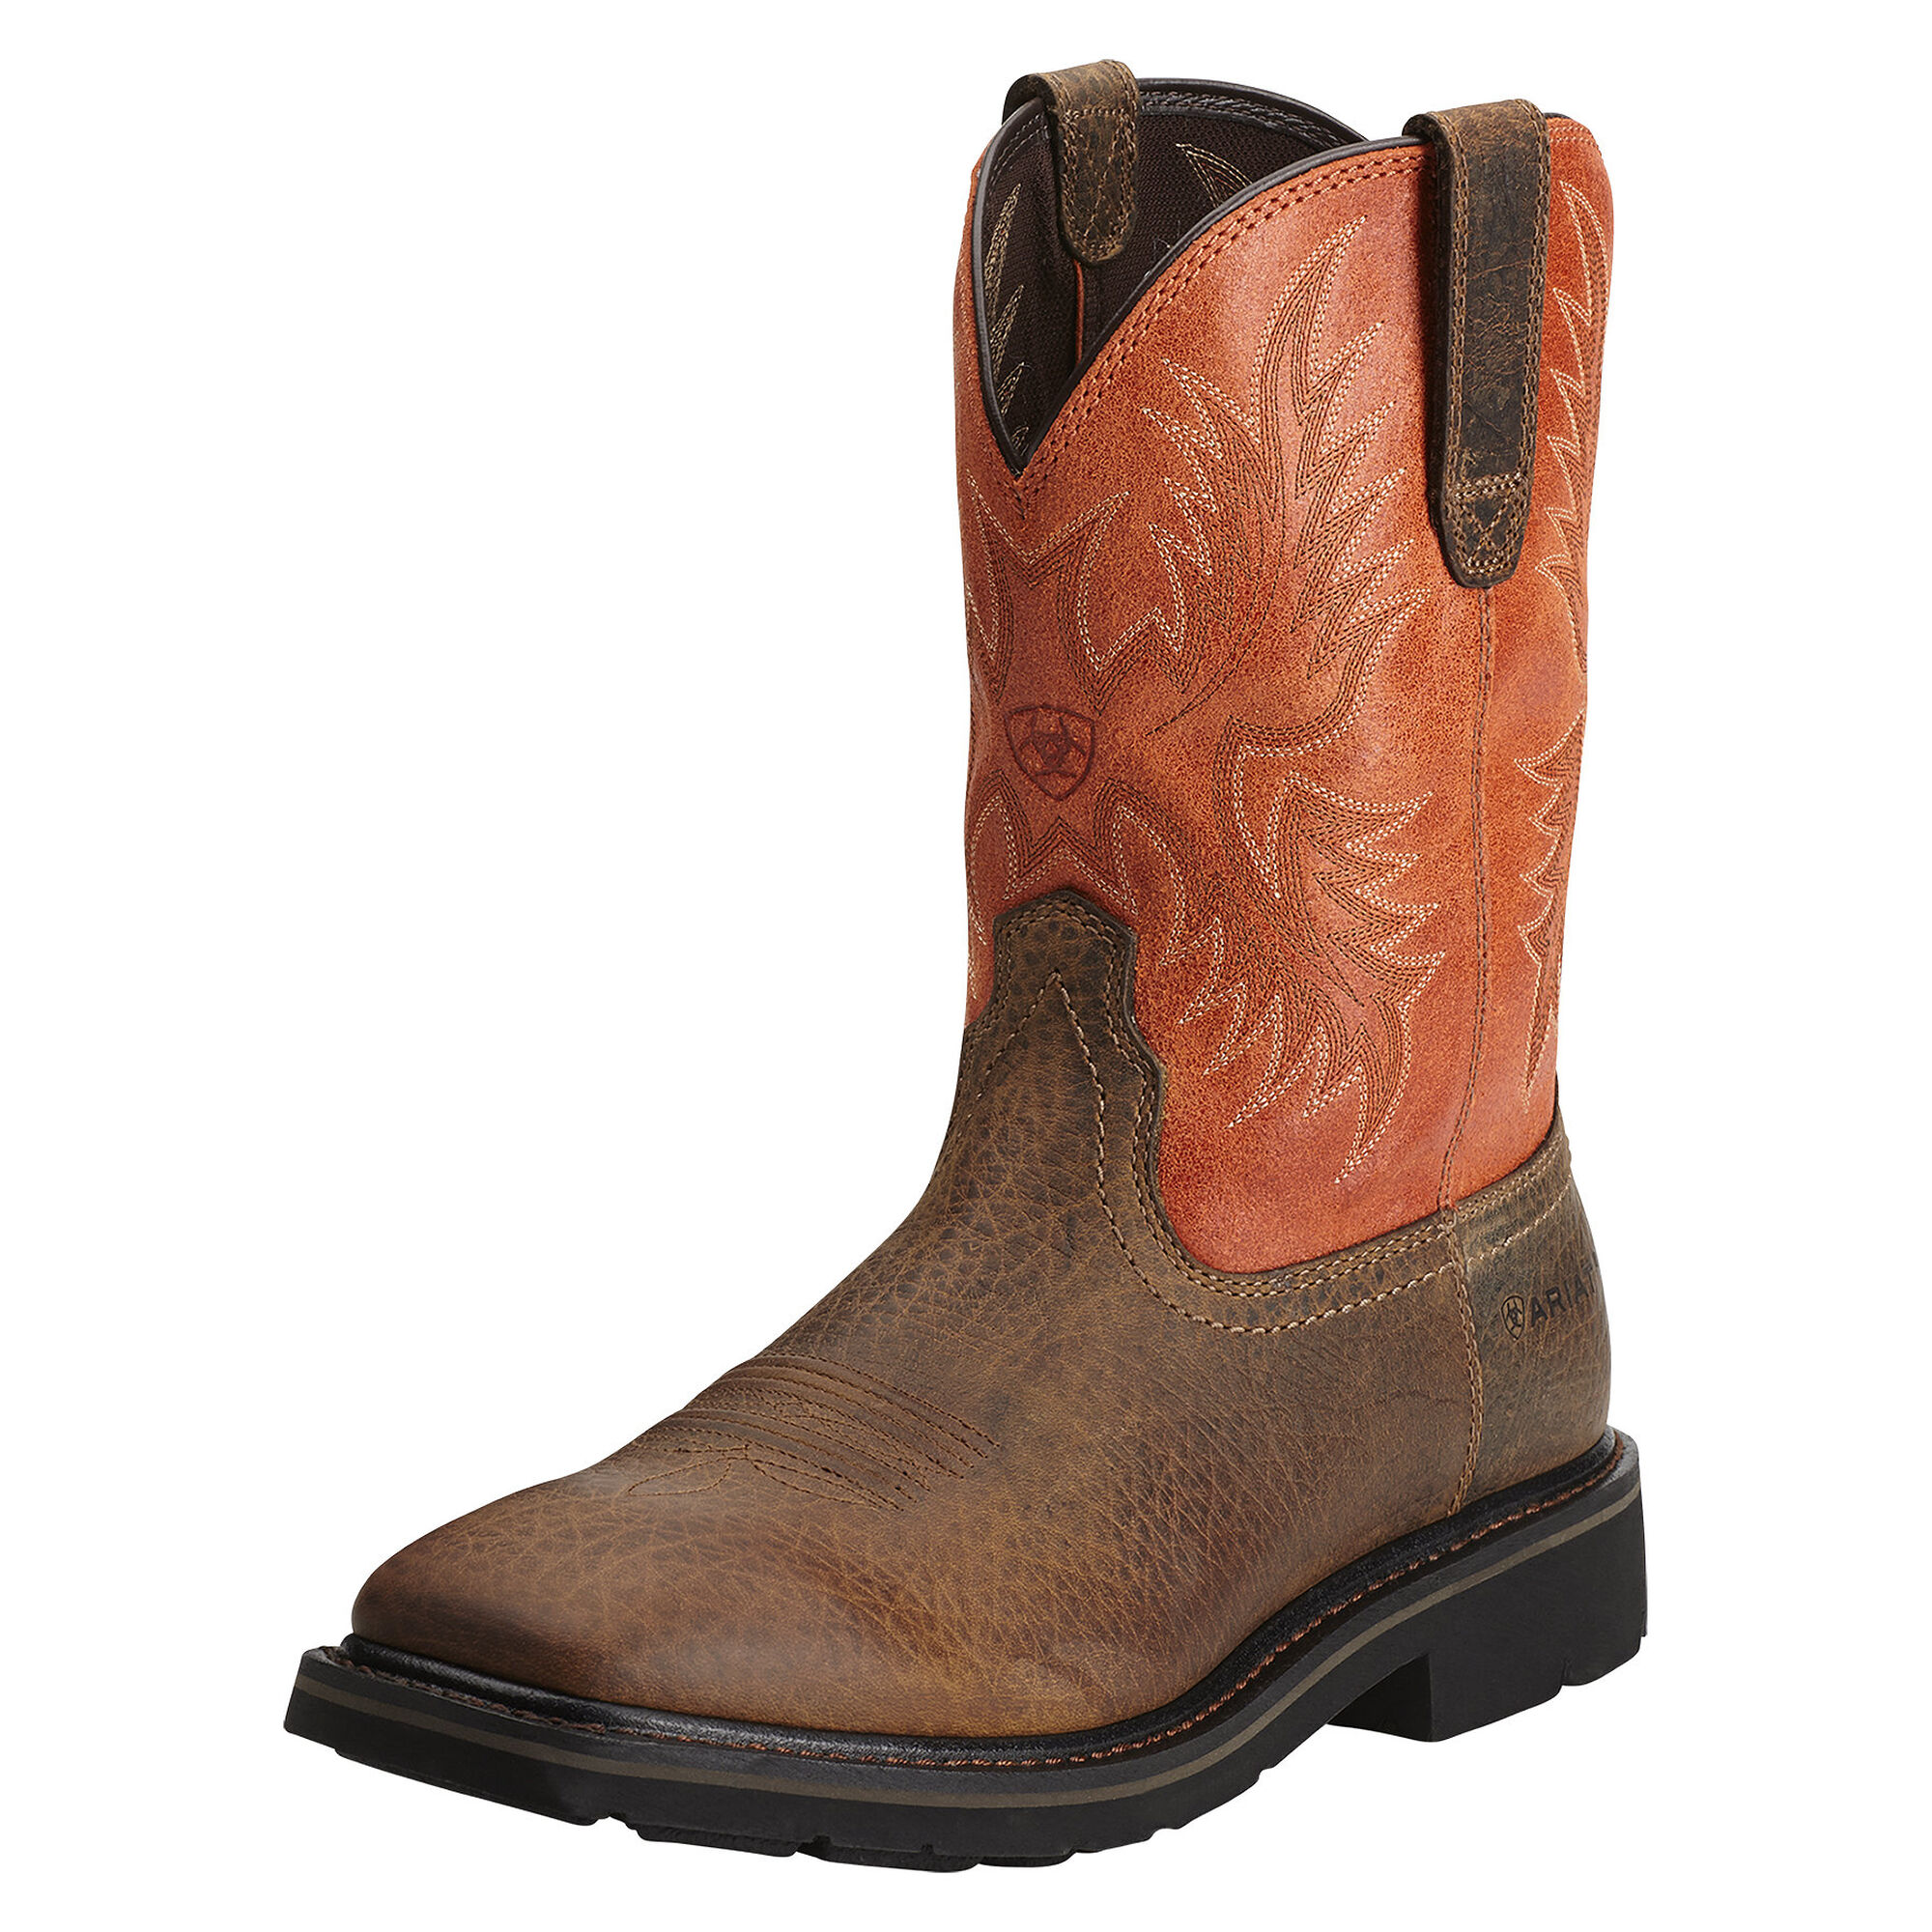 Sierra Work Boot